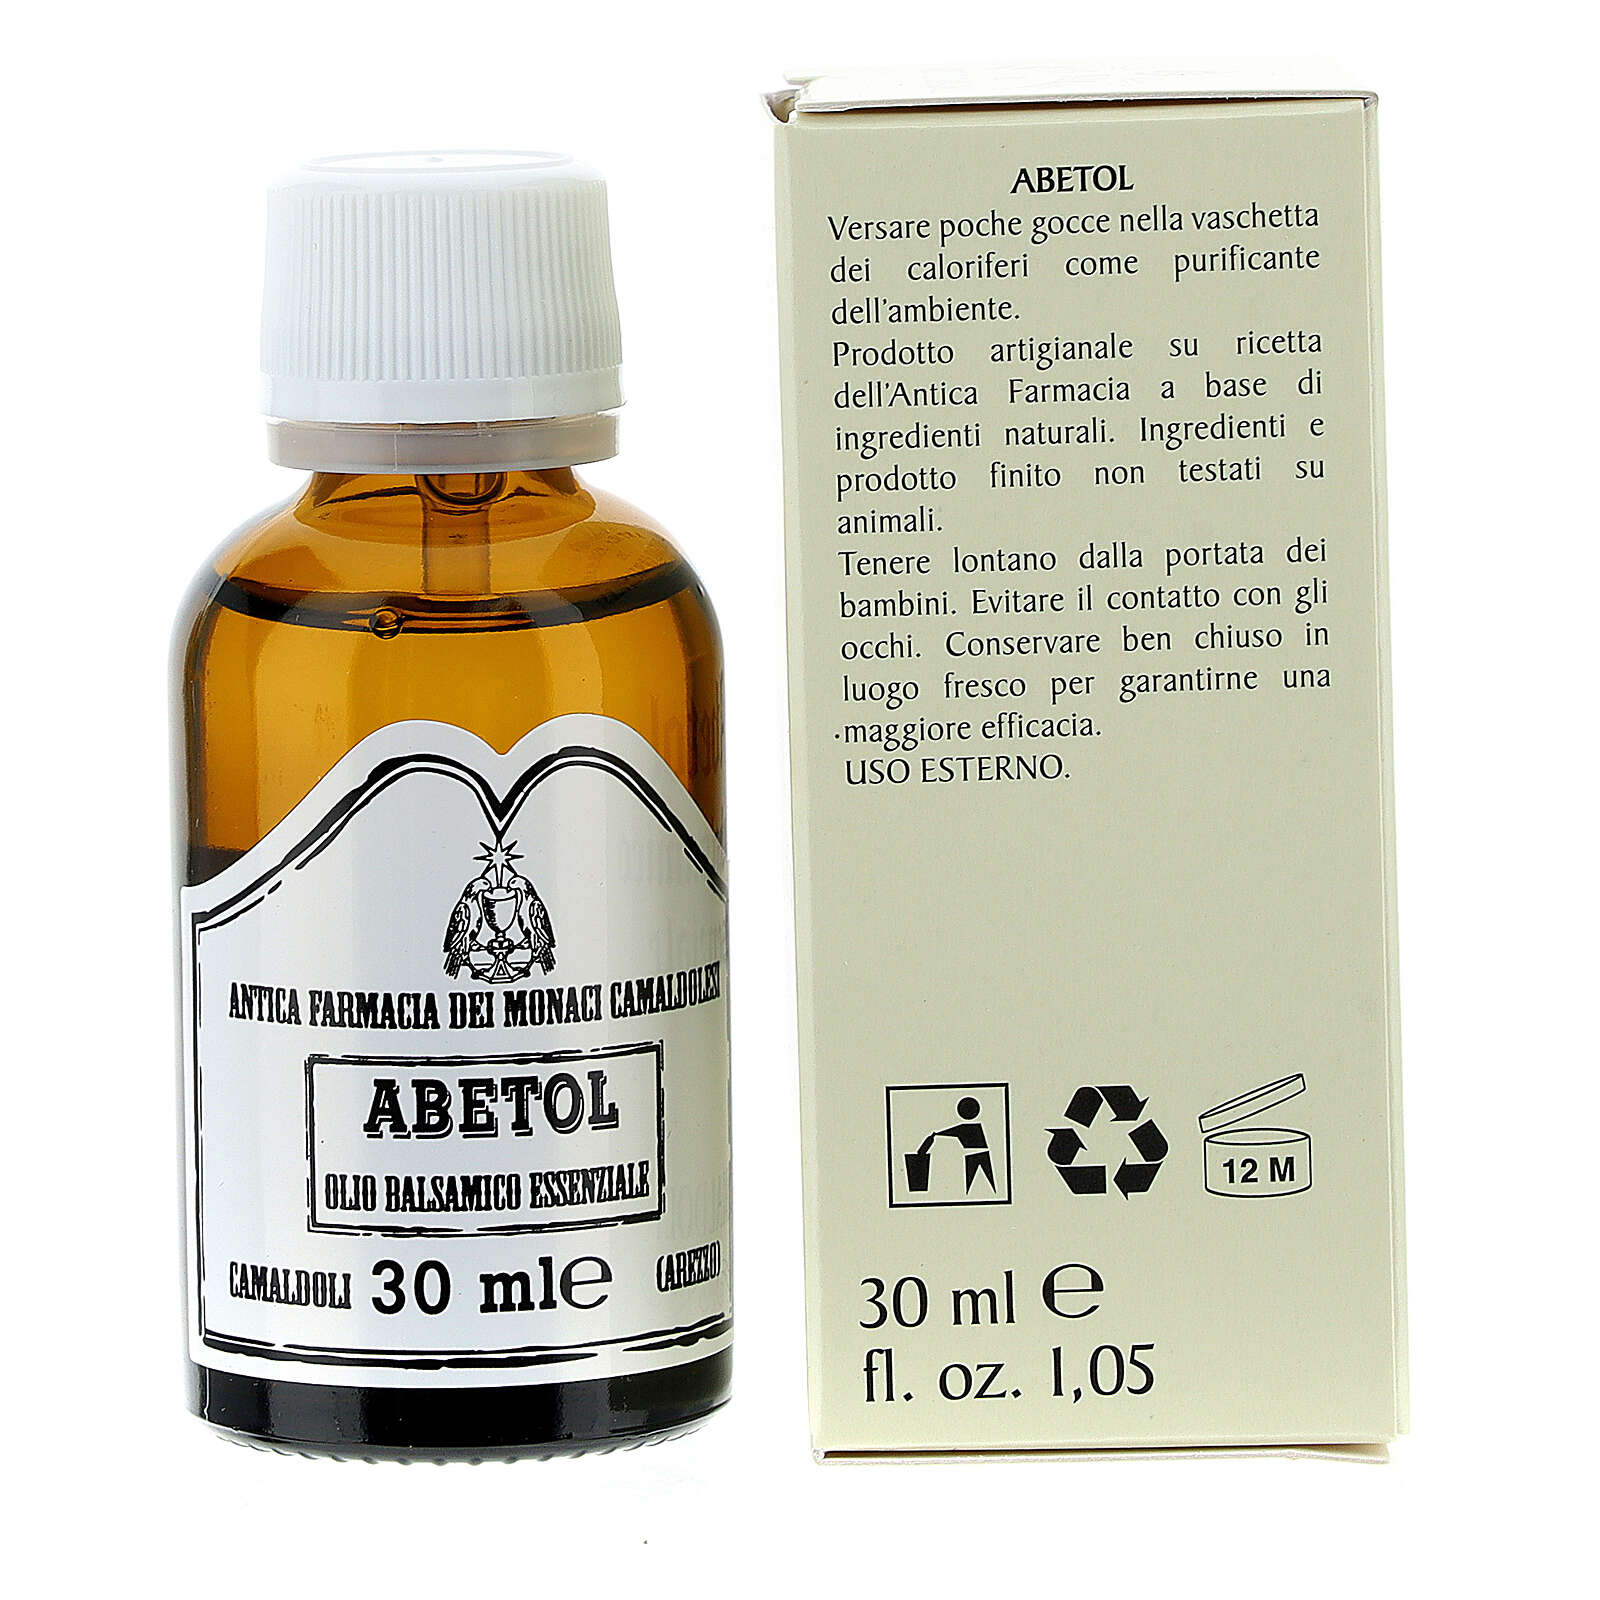 Abetol essential oil (30 ml) Camaldoli 4